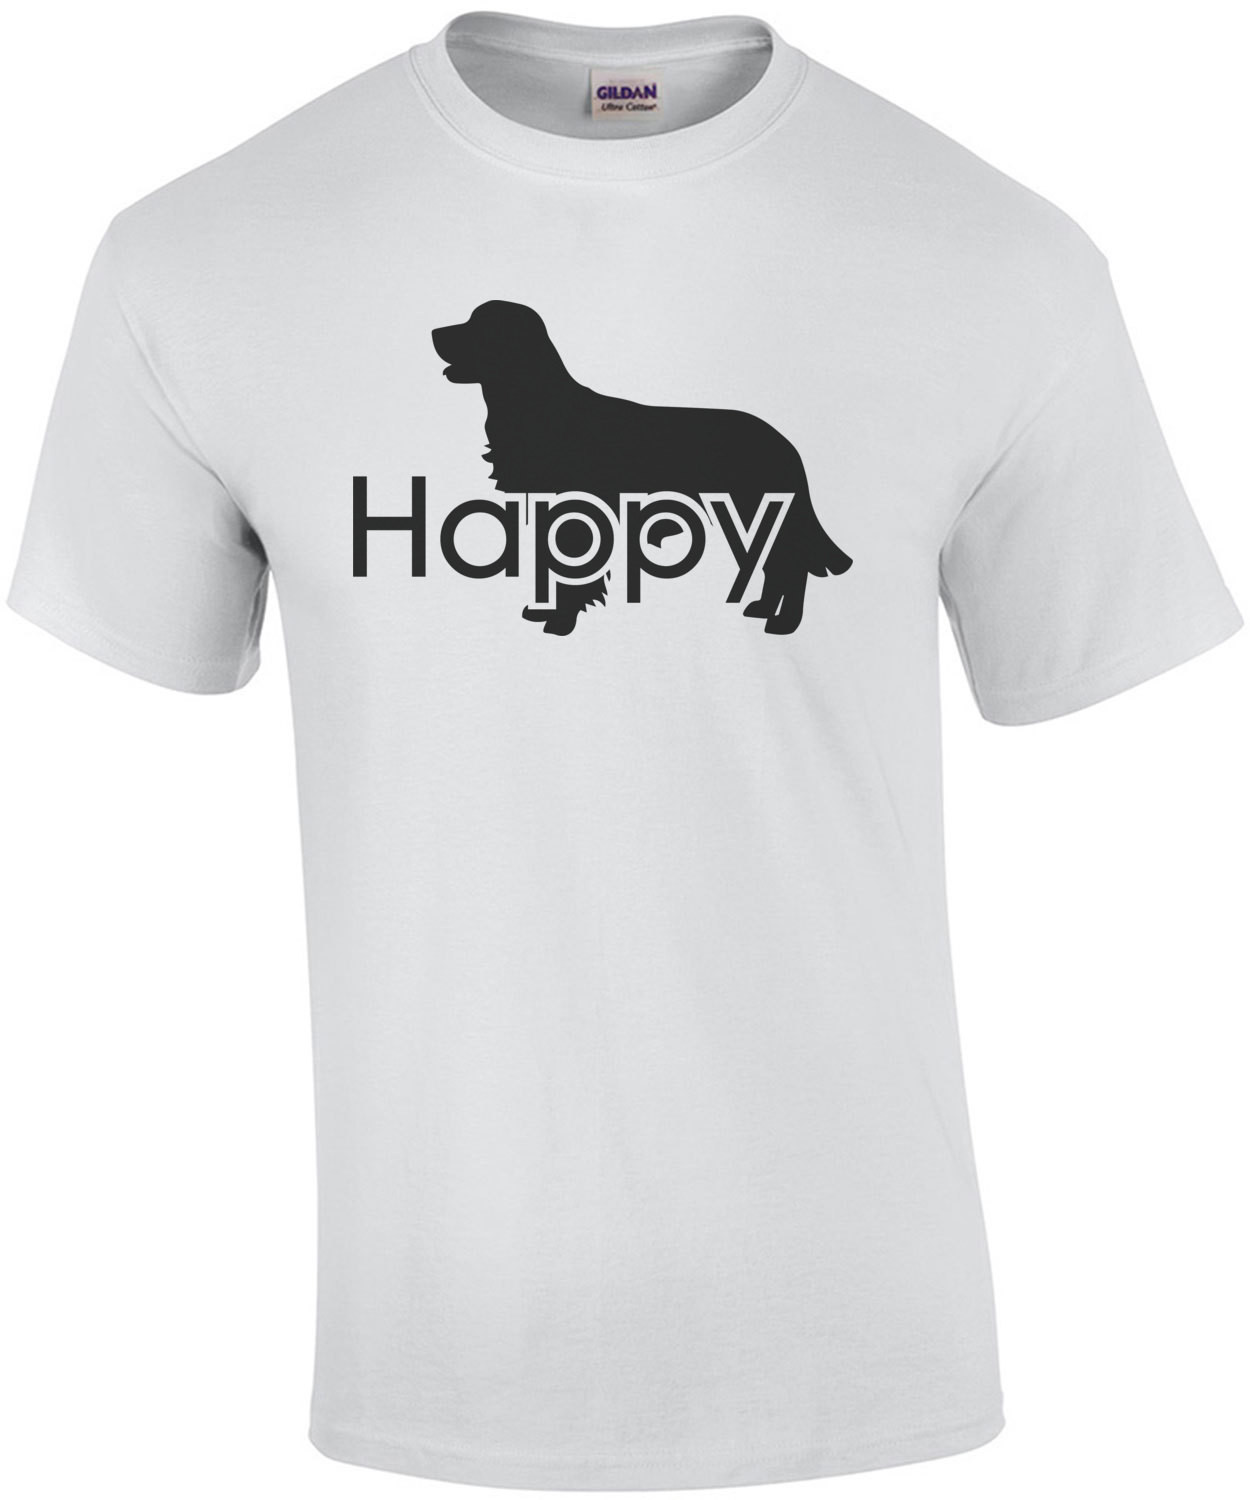 Happy Golden Retriever T-Shirt